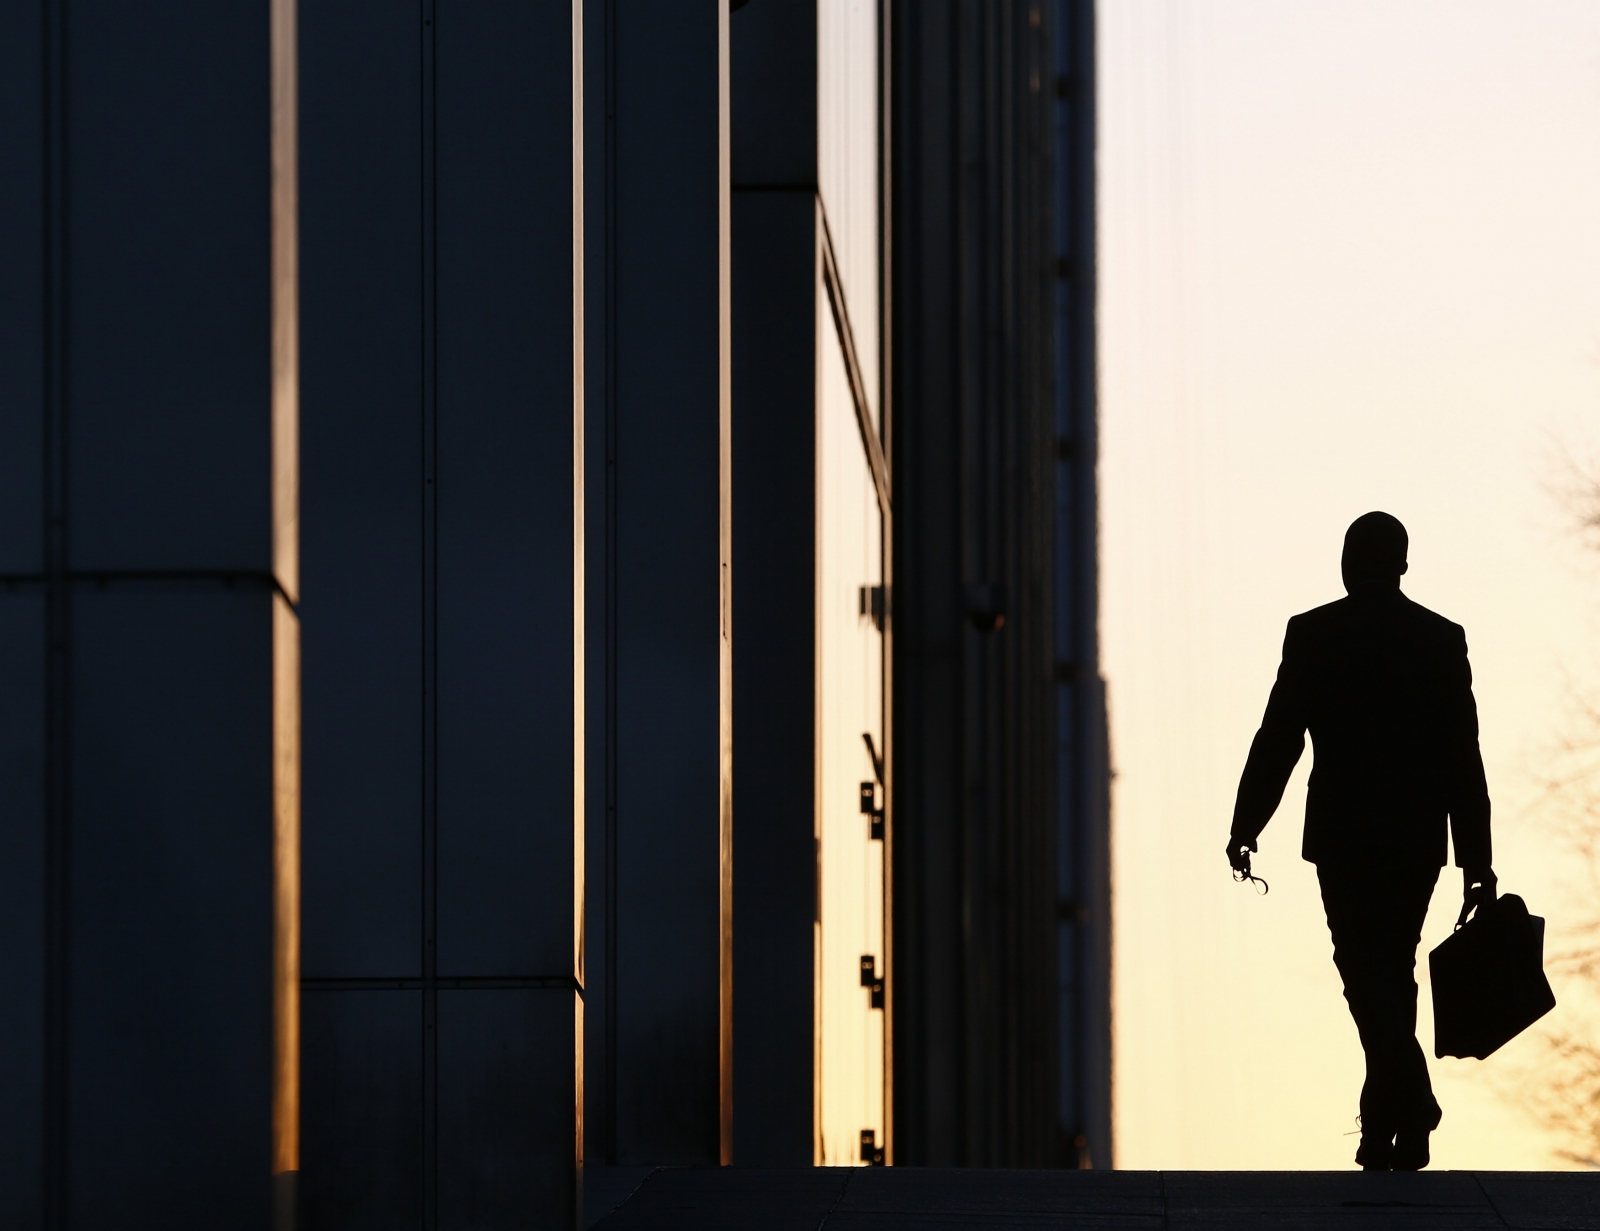 Worker arrives in Canary Wharf